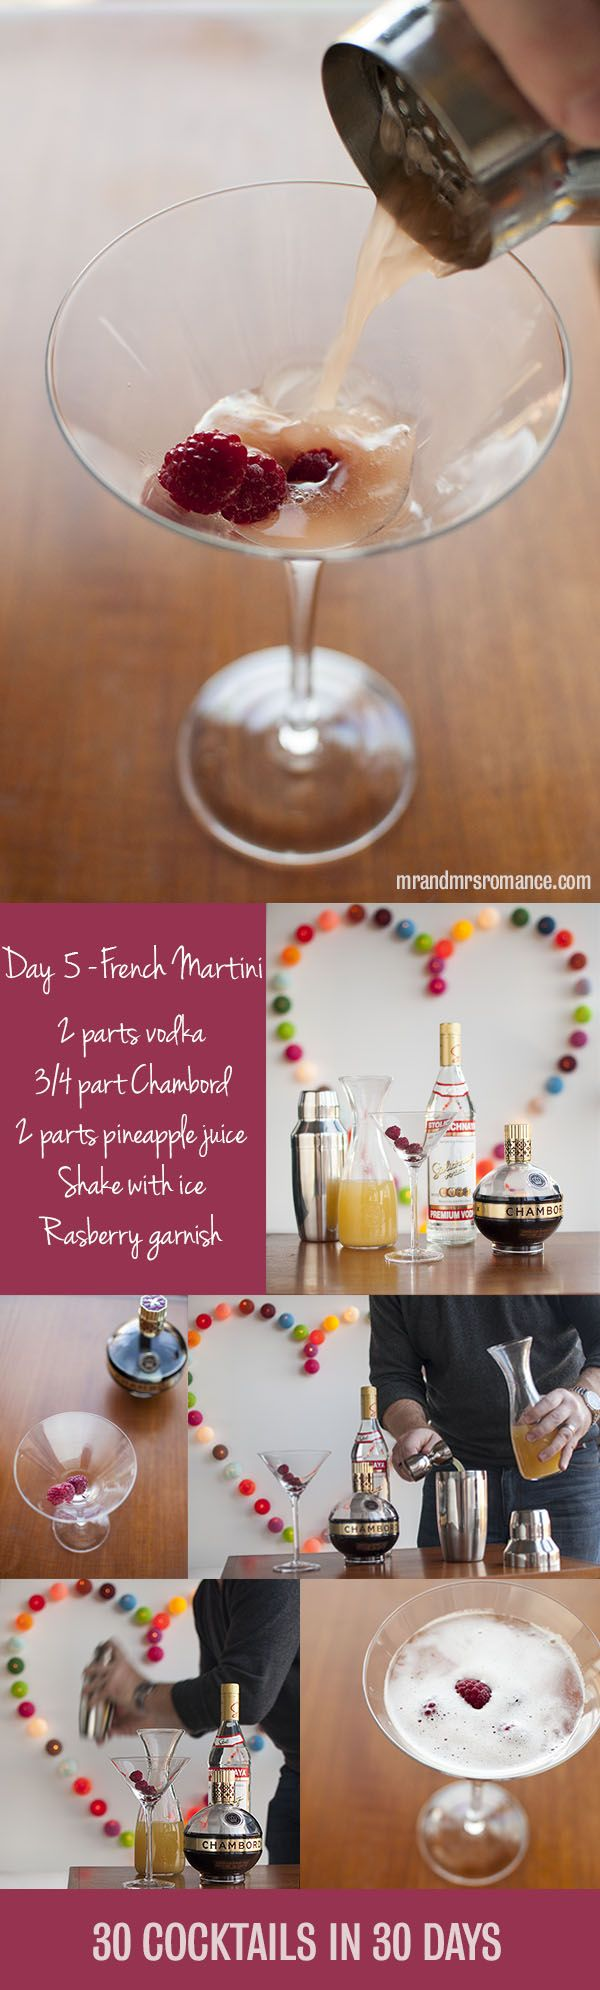 Mr and Mrs Romance - Day 5 - French Martini Cocktail Recipe #girlsguidetoparis #Pariscocktails